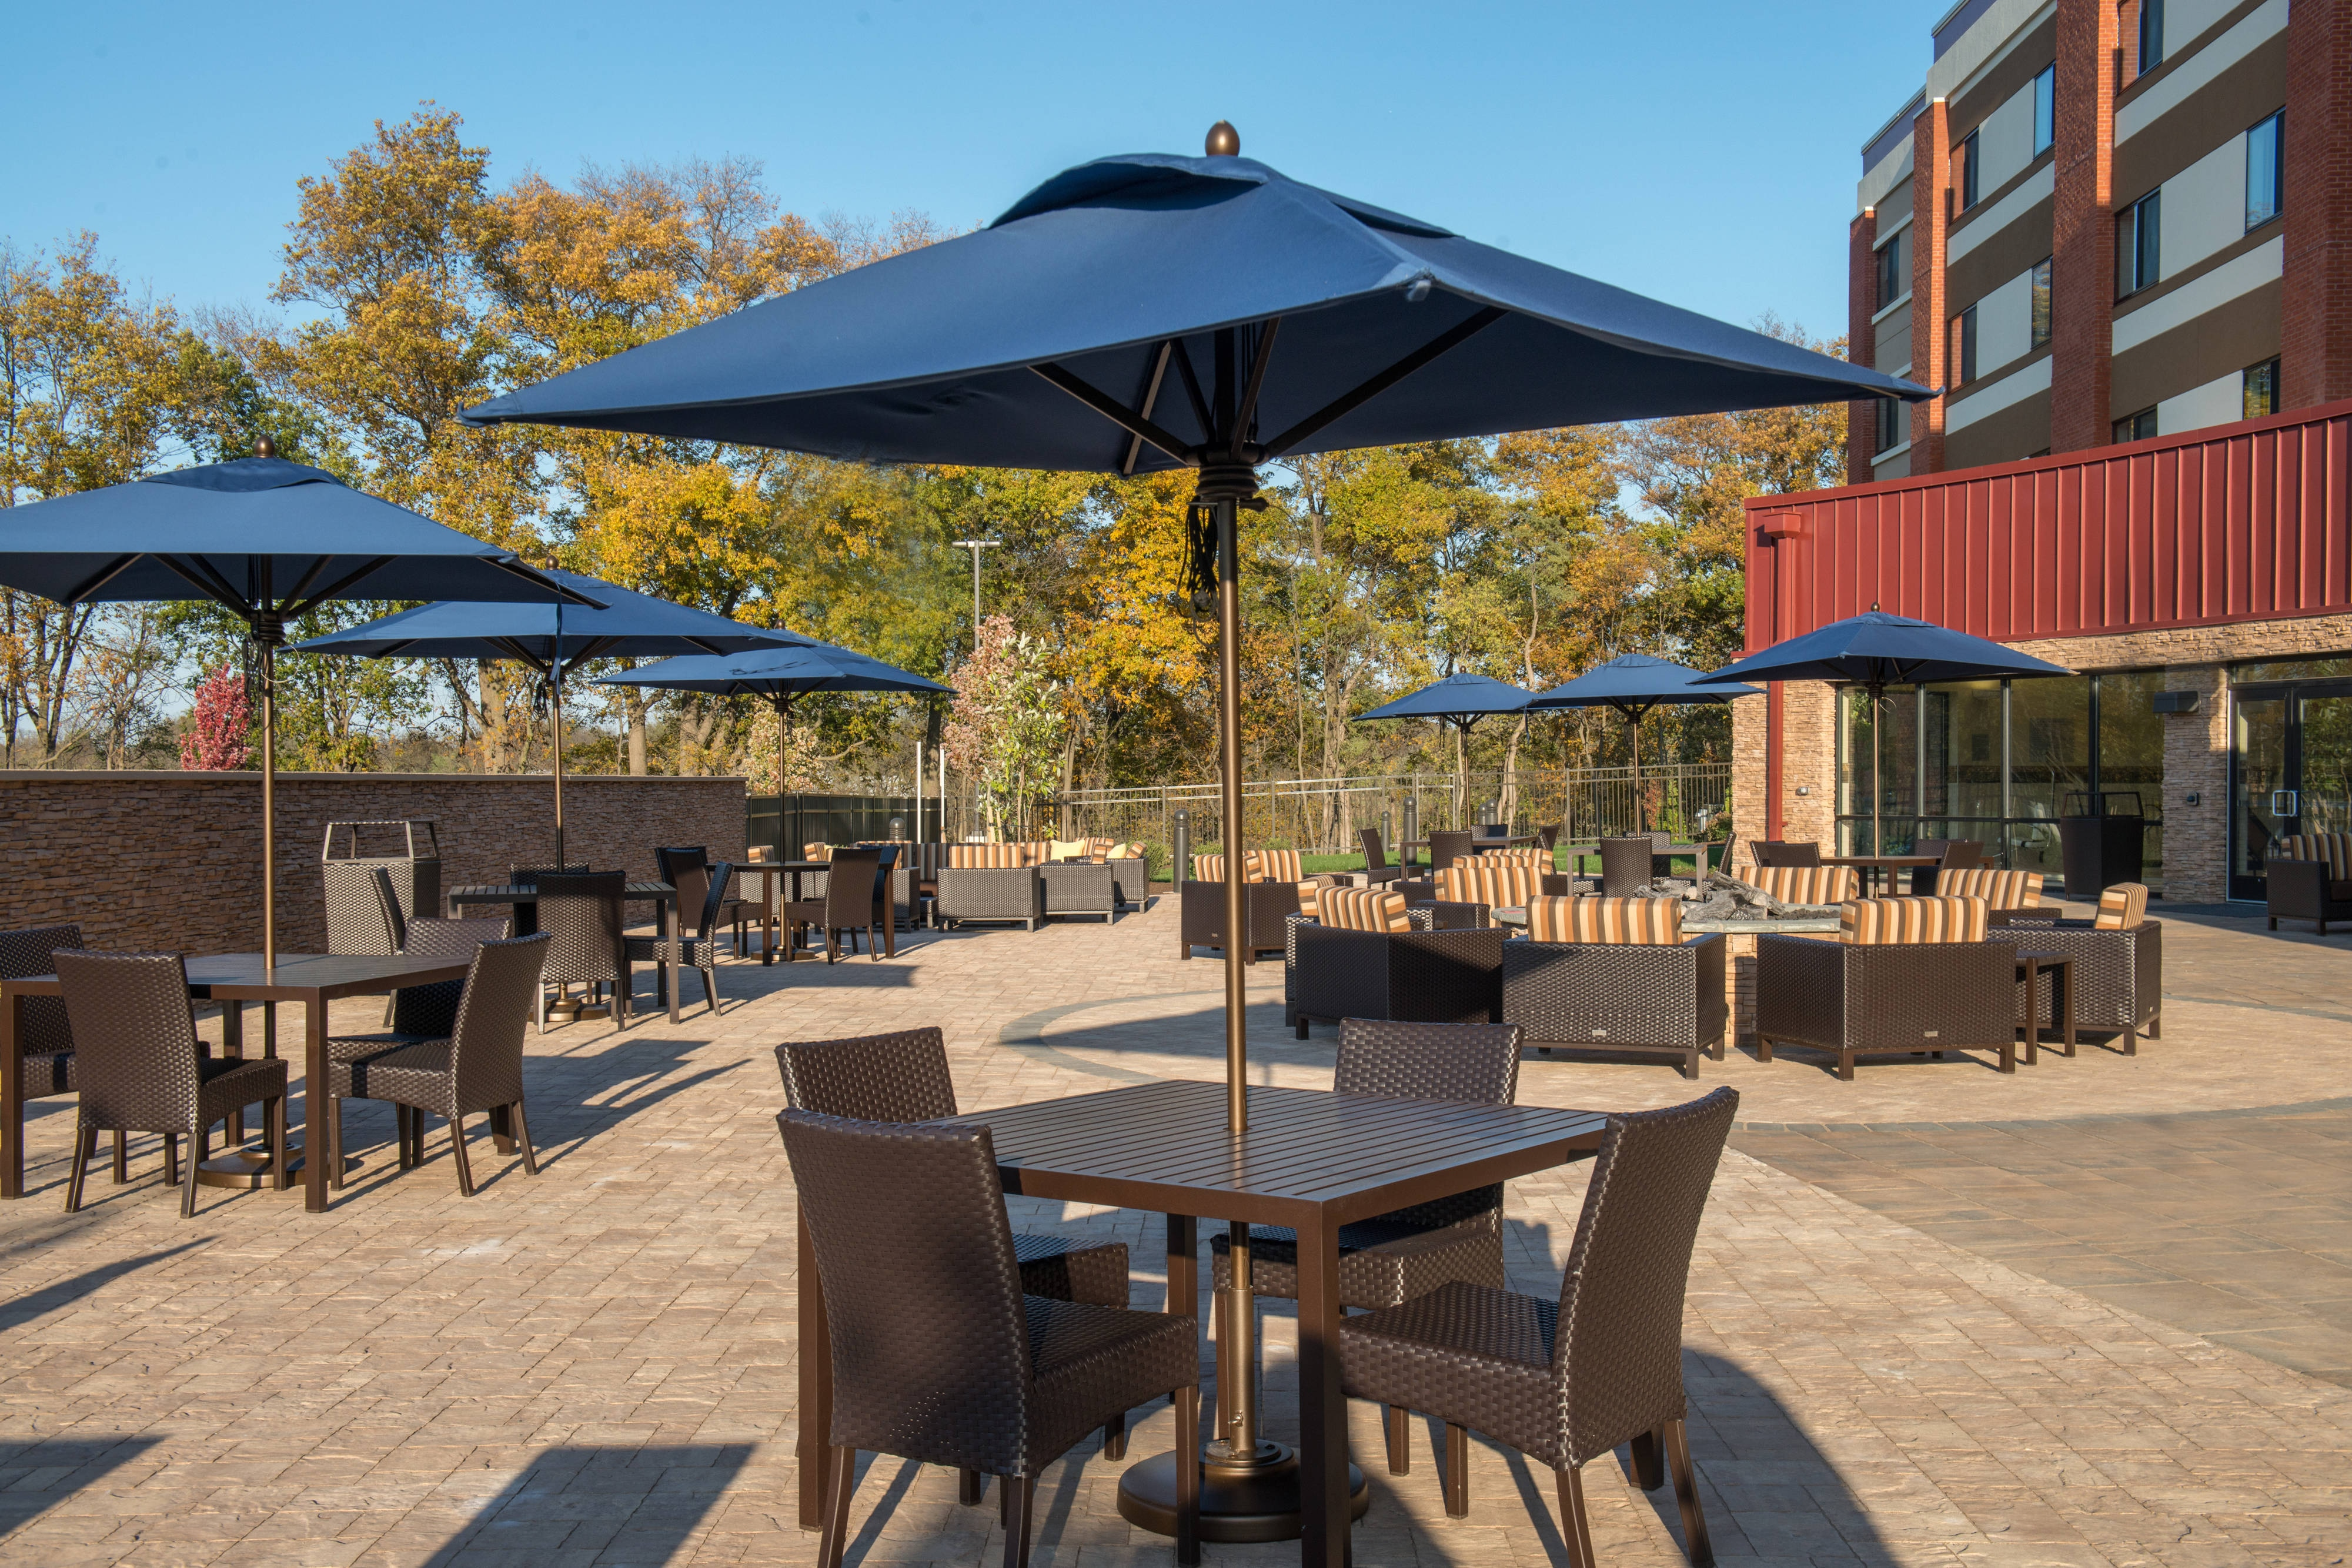 Hotel Near Shippensburg University Outdoor Patio